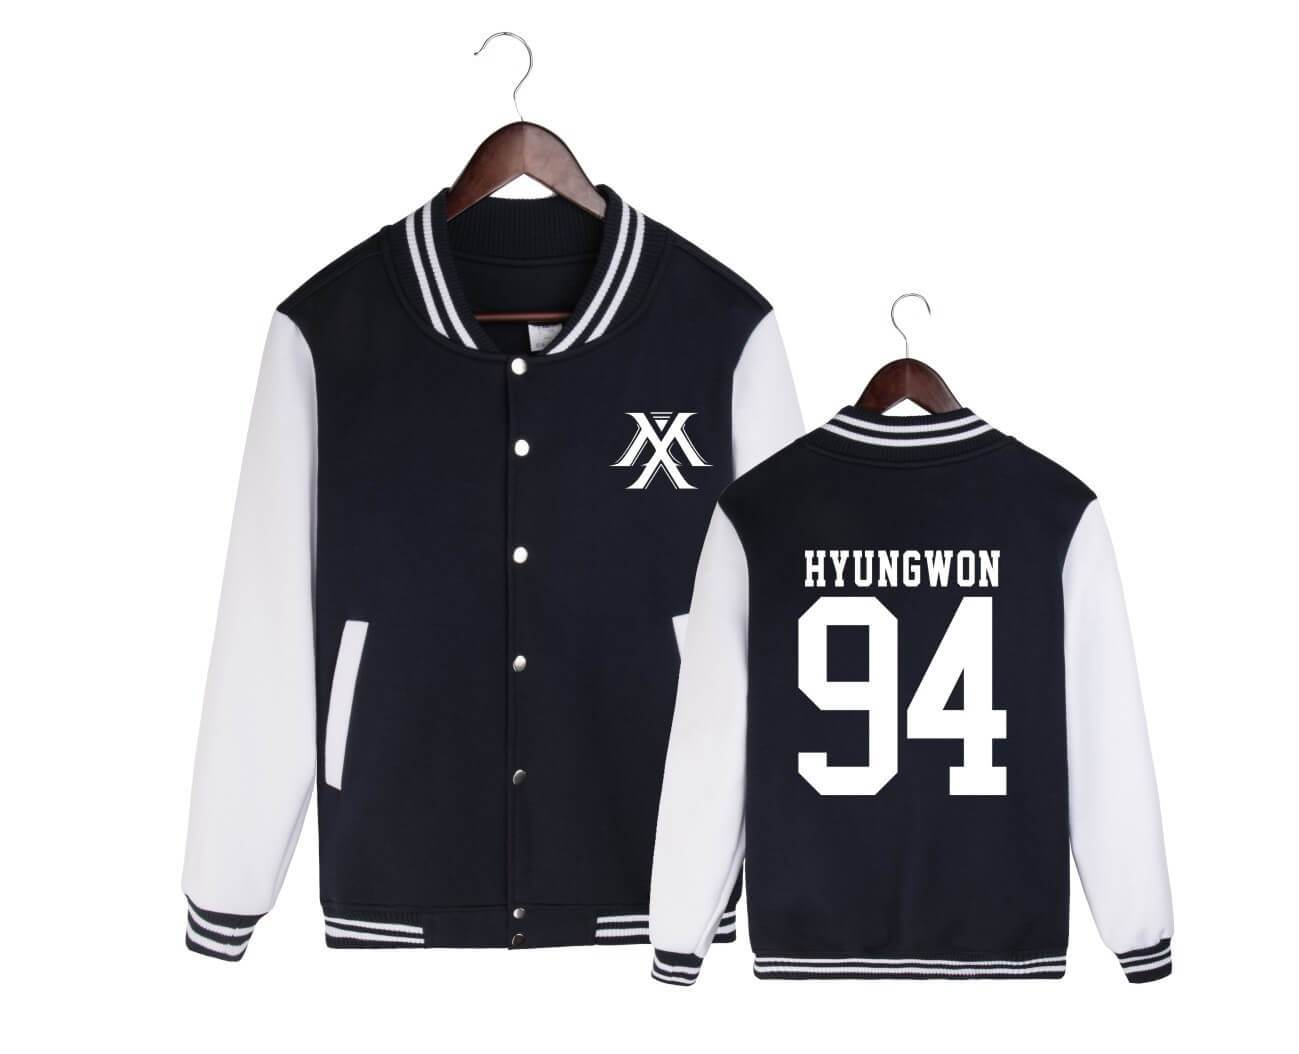 MONSTA X Member Name Printed Baseball Uniform